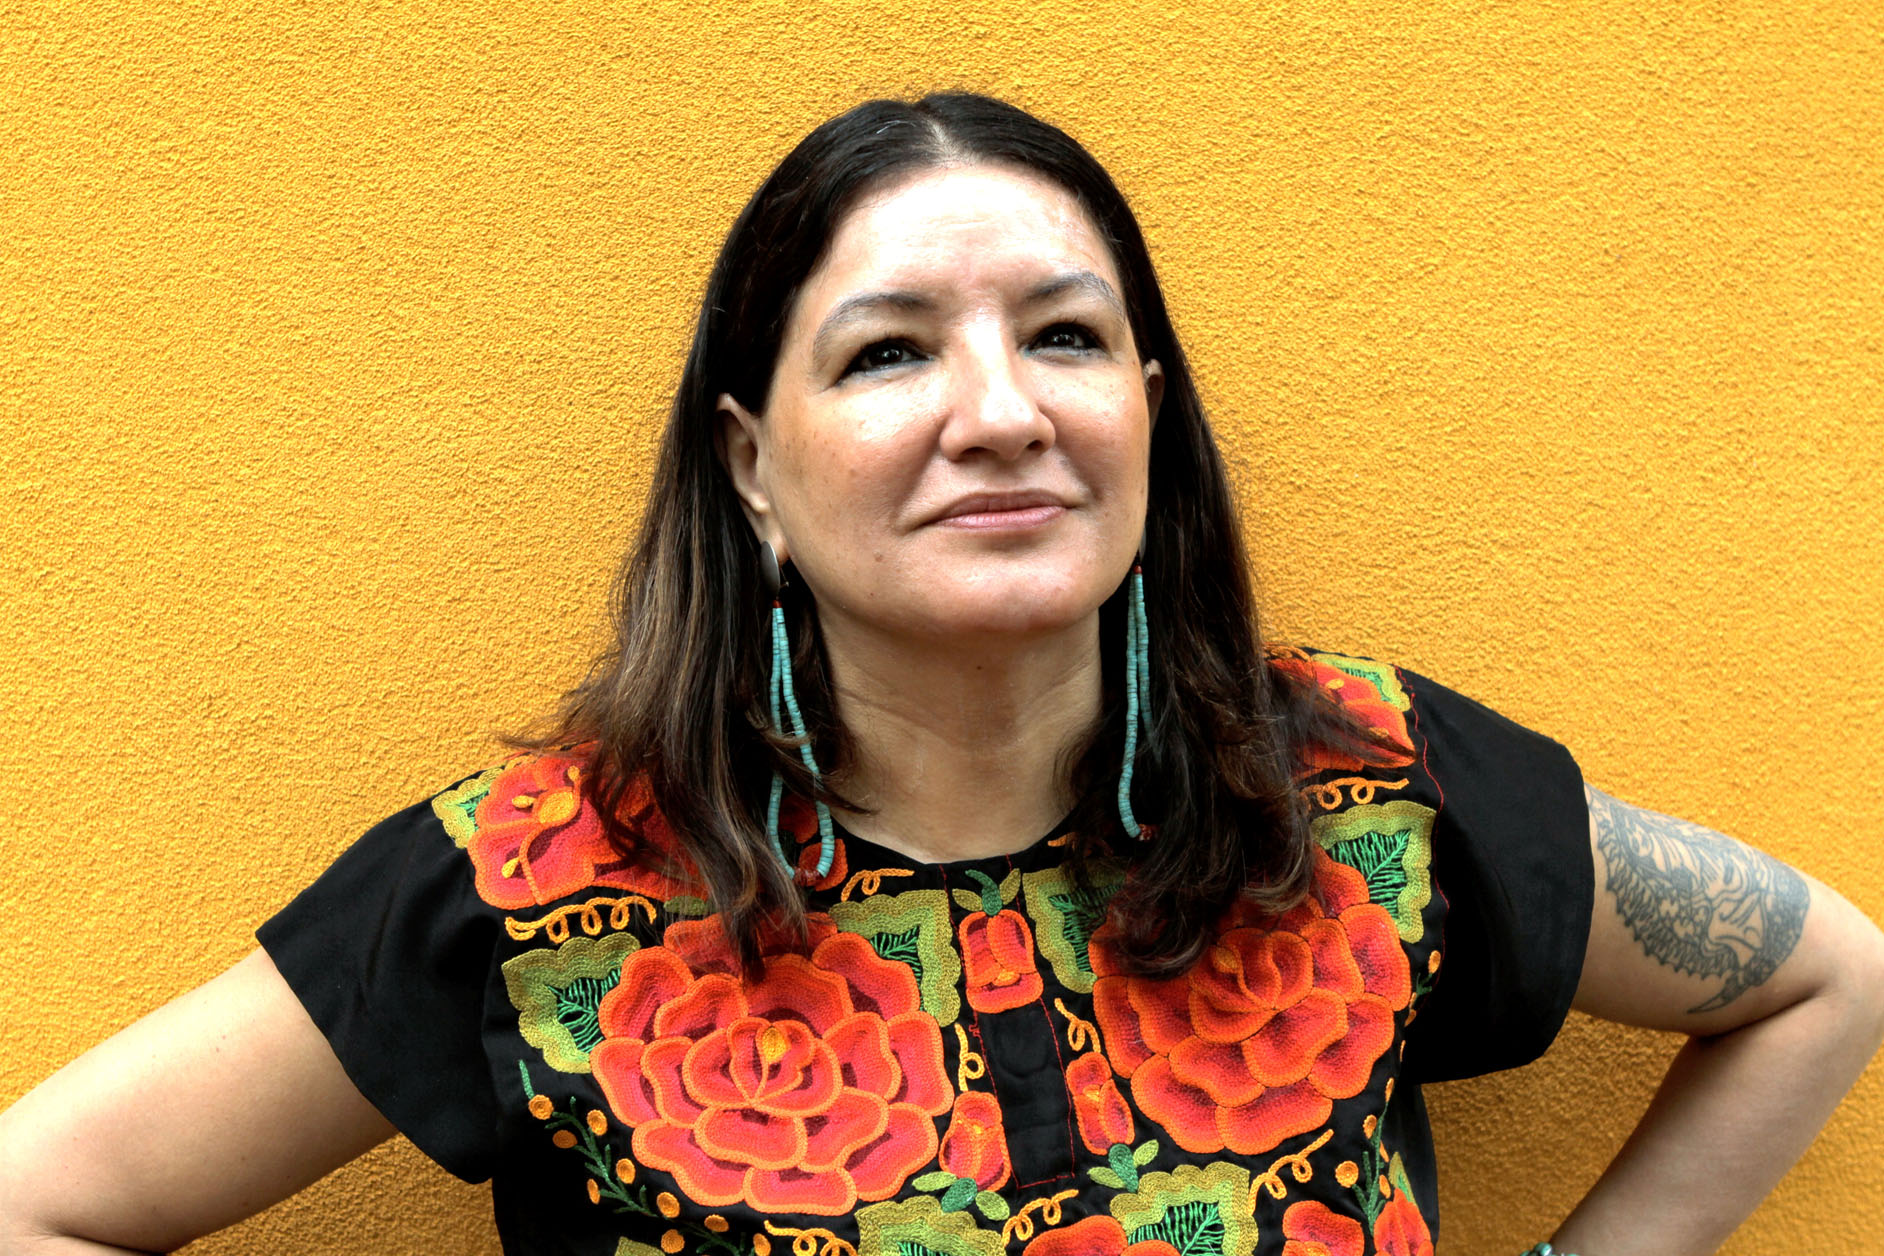 Classic Theatre Opens Season With A Trip To Sandra Cisneros The  Classic Theatre Opens Season With A Trip To Sandra Cisneros The House On Mango  Street  Expressnewscom Fast Custom Writing also Business Law Essays  English Class Reflection Essay